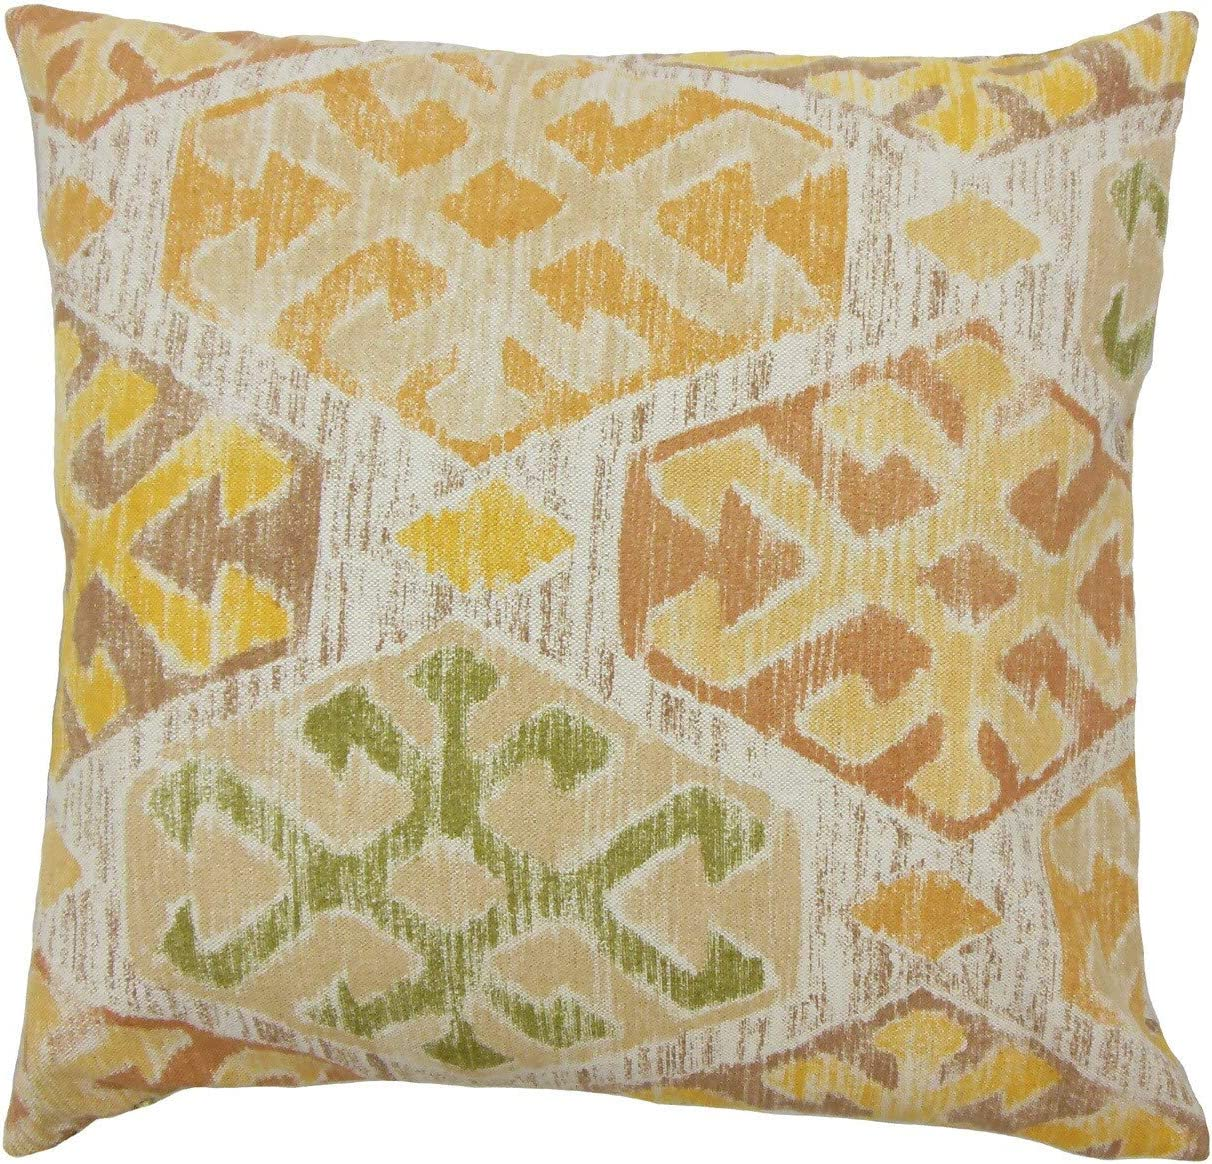 Amazon Com The Pillow Collection Galen Ikat Gold Down Filled Throw Pillow Home Kitchen